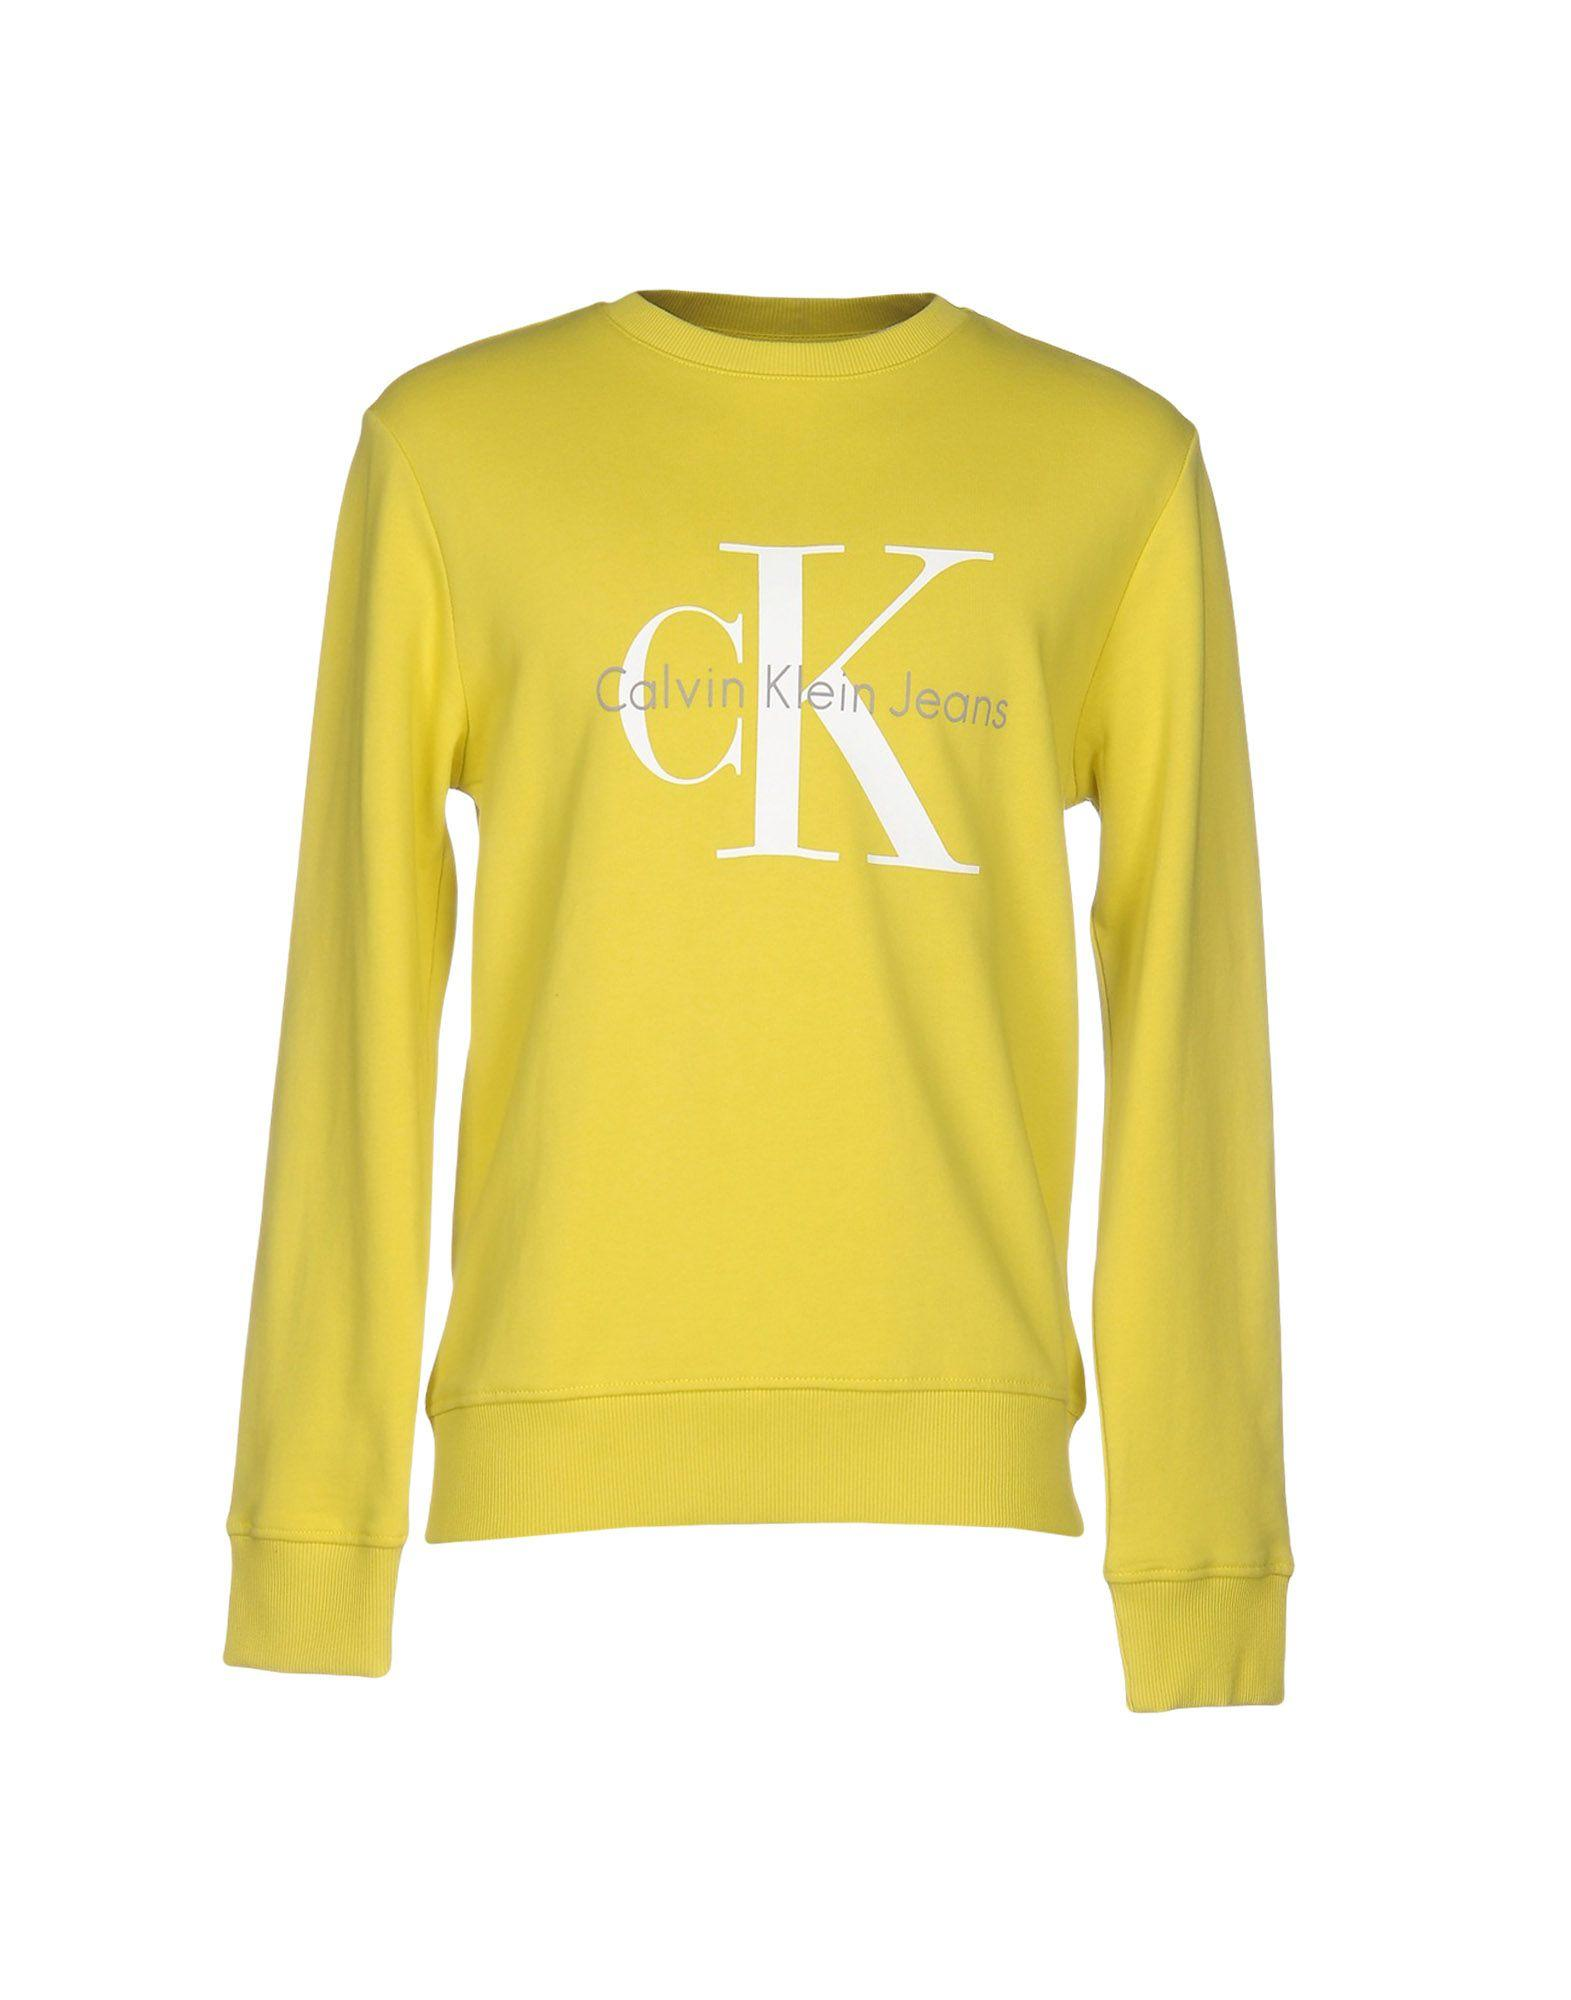 calvin klein jeans sweatshirt in yellow for men lyst. Black Bedroom Furniture Sets. Home Design Ideas